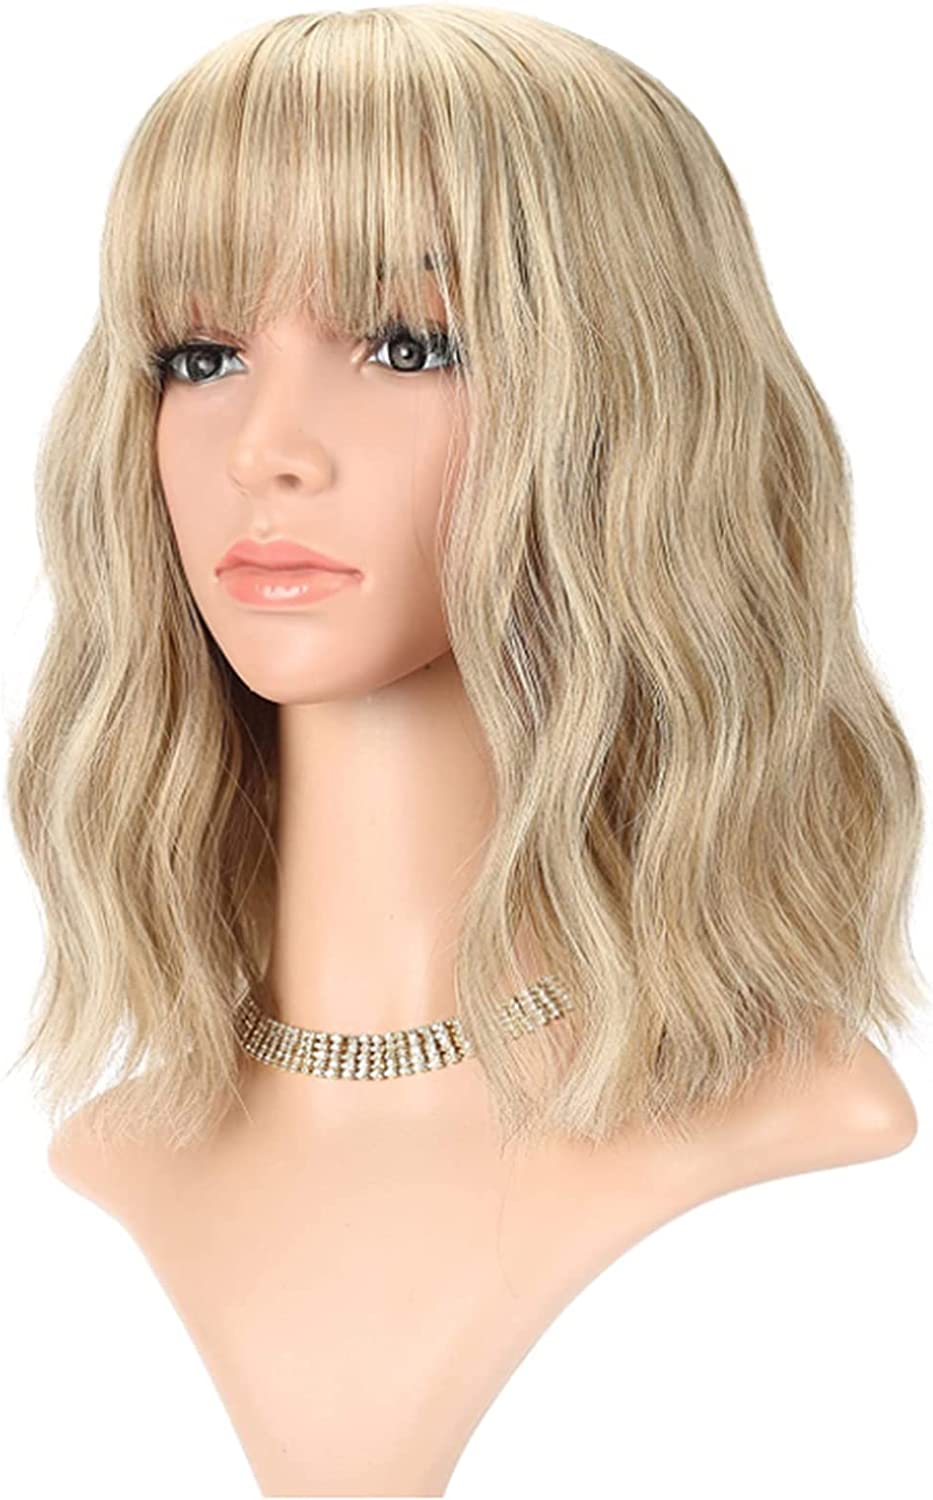 SuRose Charming Natural Wavy Wigs for Women Hair Bangs Wig Opening large release sale Direct stock discount